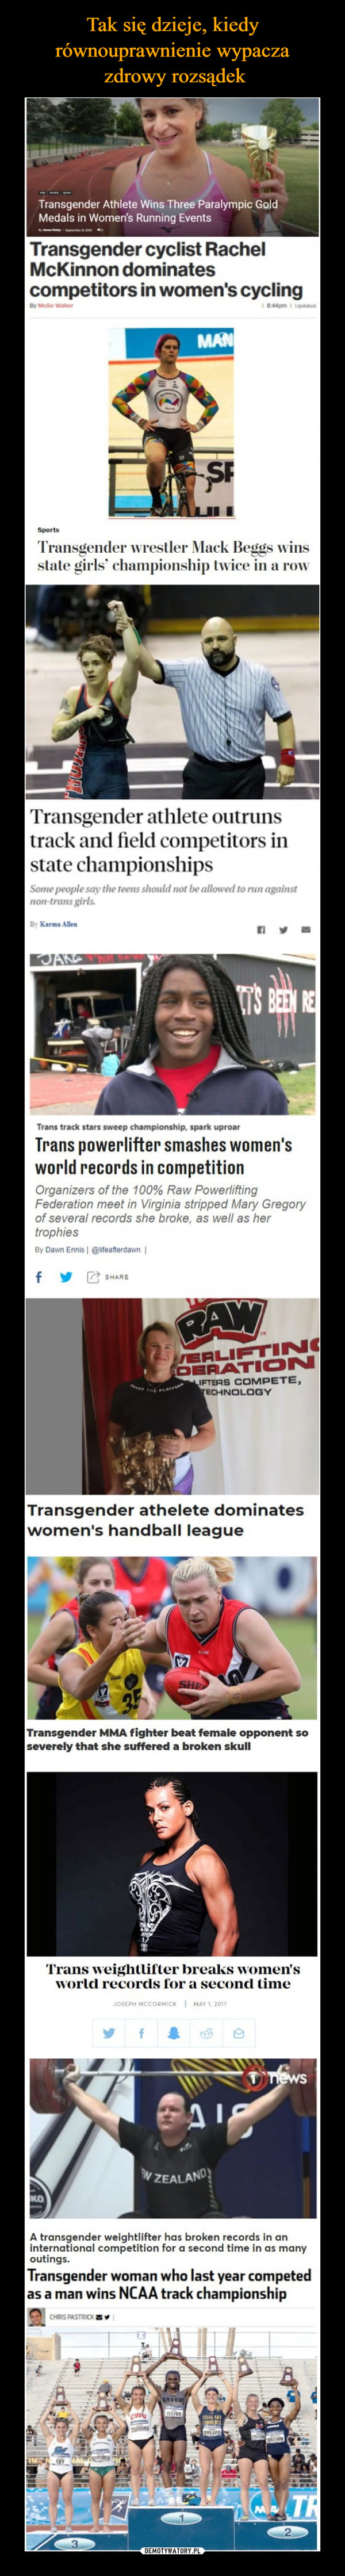 –  Transgender Athlete Wins Three Paralympic GoldMedals in Women's Running EventsTransgender cyclist RachelMcKinnon dominatescompetitors in women's cyclingBy Mollie Walker1 8:44pm I UpdatedMANSFSportsTransgender wrestler Mack Beggs winsstate girls' championship twice in a rowTransgender athlete outrunstrack and field competitors instate championshipsSome people say the teens should not be allowed to run againstnon-trans girls.By Karma AllenTS BEEN RETrans track stars sweep championship, spark uproarTrans powerlifter smashes women'sworld records in competitionOrganizers of the 100% Raw PowerliftingFederation meet in Virginia stripped Mary Gregoryof several records she broke, as well as hertrophiesBy Dawn Ennis   @lifeafterdawn  SHARERAWERLIFTI NCOERATI ONLIFTERS COMPETE,TECHNOLOGYAE TH PLAOTransgender athelete dominateswomen's handball leagueTransgender MMA fighter beat female opponent soseverely that she suffered a broken skullTrans weightlifter breaks women'sworld records for a second timeJOSEPH MCCORMICK I MAY 1, 2017TnewsW ZEALANDKOA transgender weightlifter has broken records in aninternational competition for a second time in as manyoutings.Transgender woman who last year competedas a man wins NCAA track championshipCHRIS PASTRICKEAVENSTELERLAS AFIMEBYTR